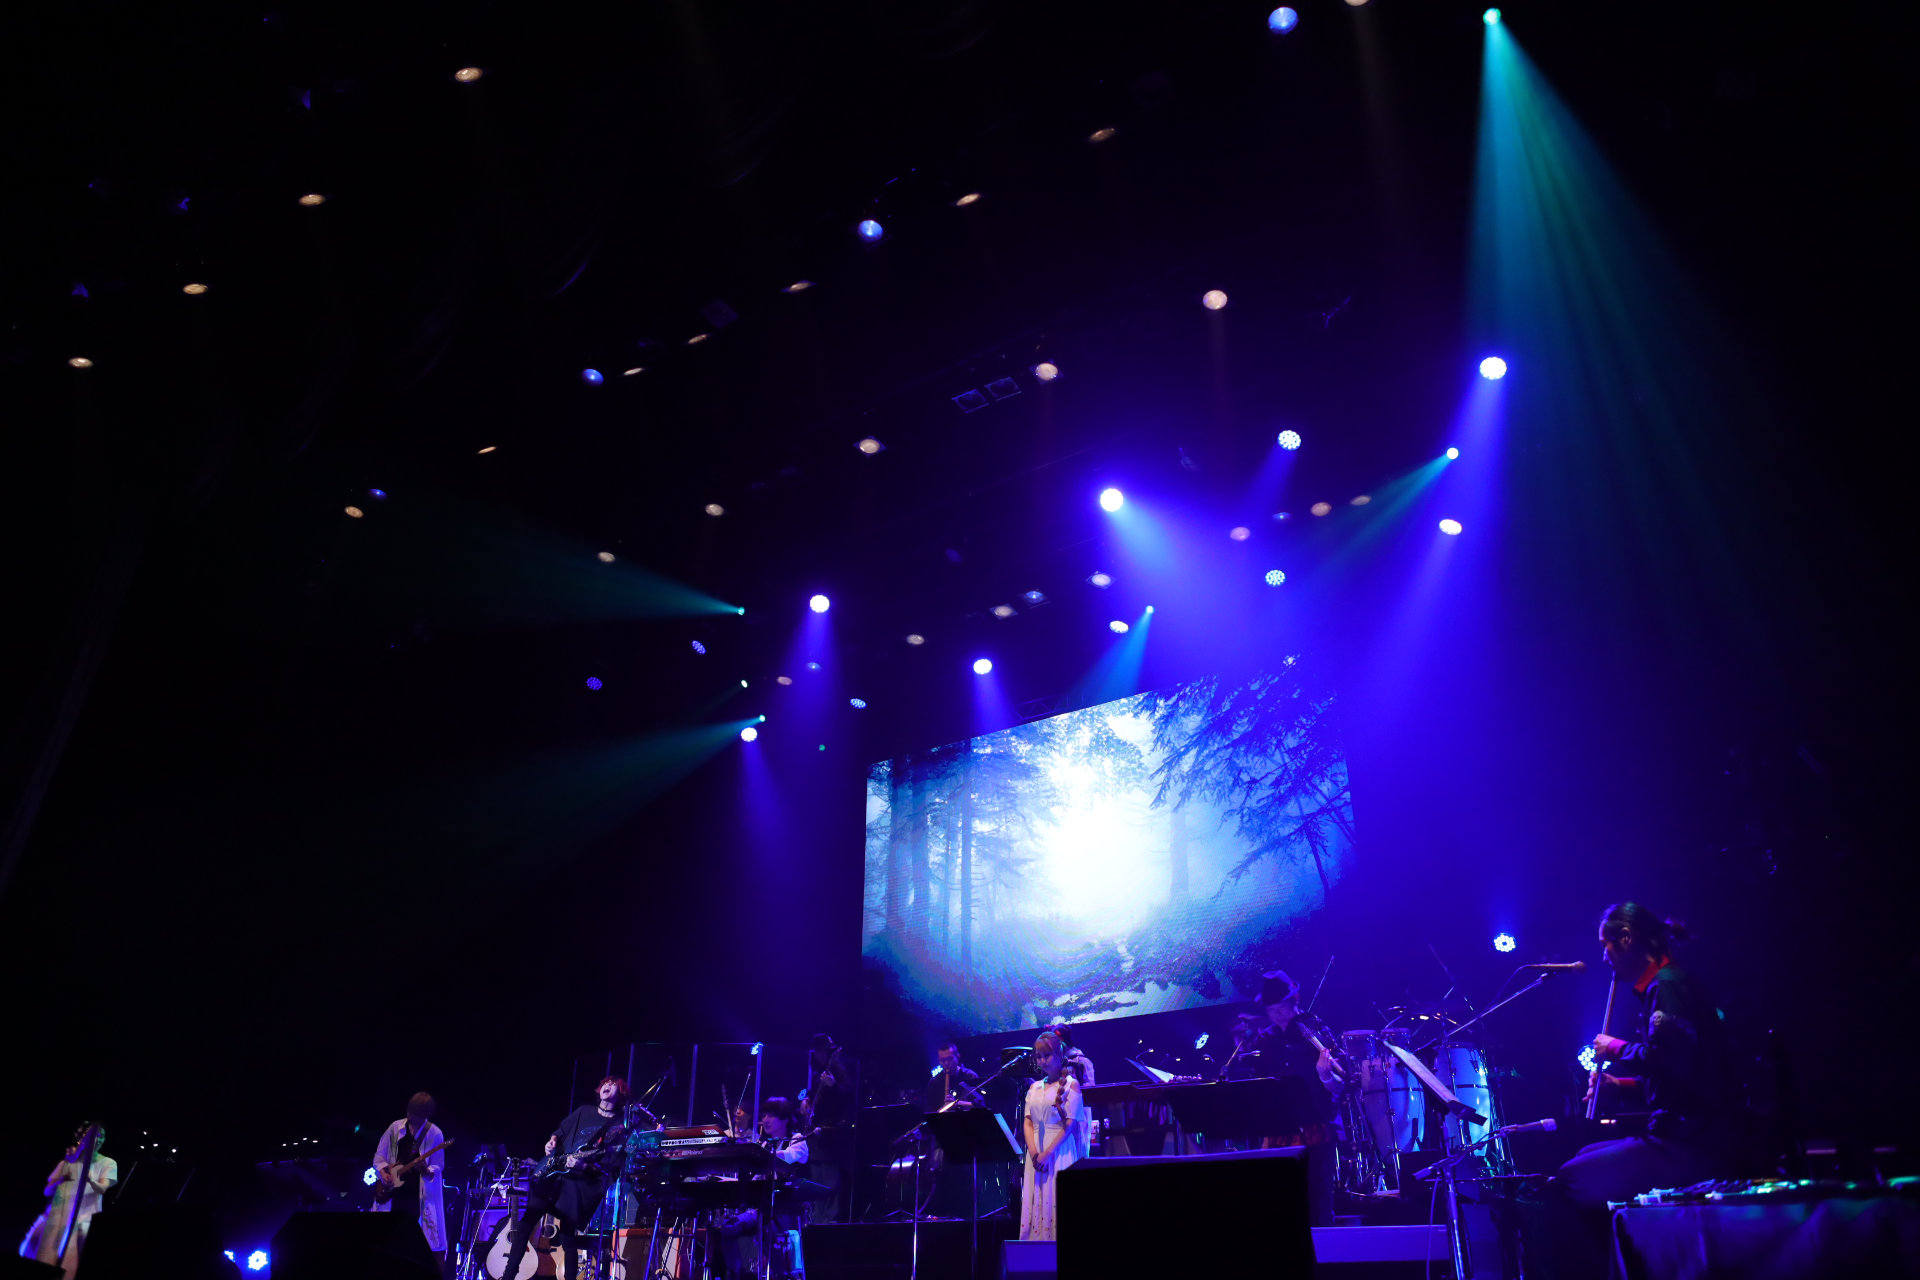 Chrono Cross concert photo showing the performers in front of a large screen with an image of a misty forest.